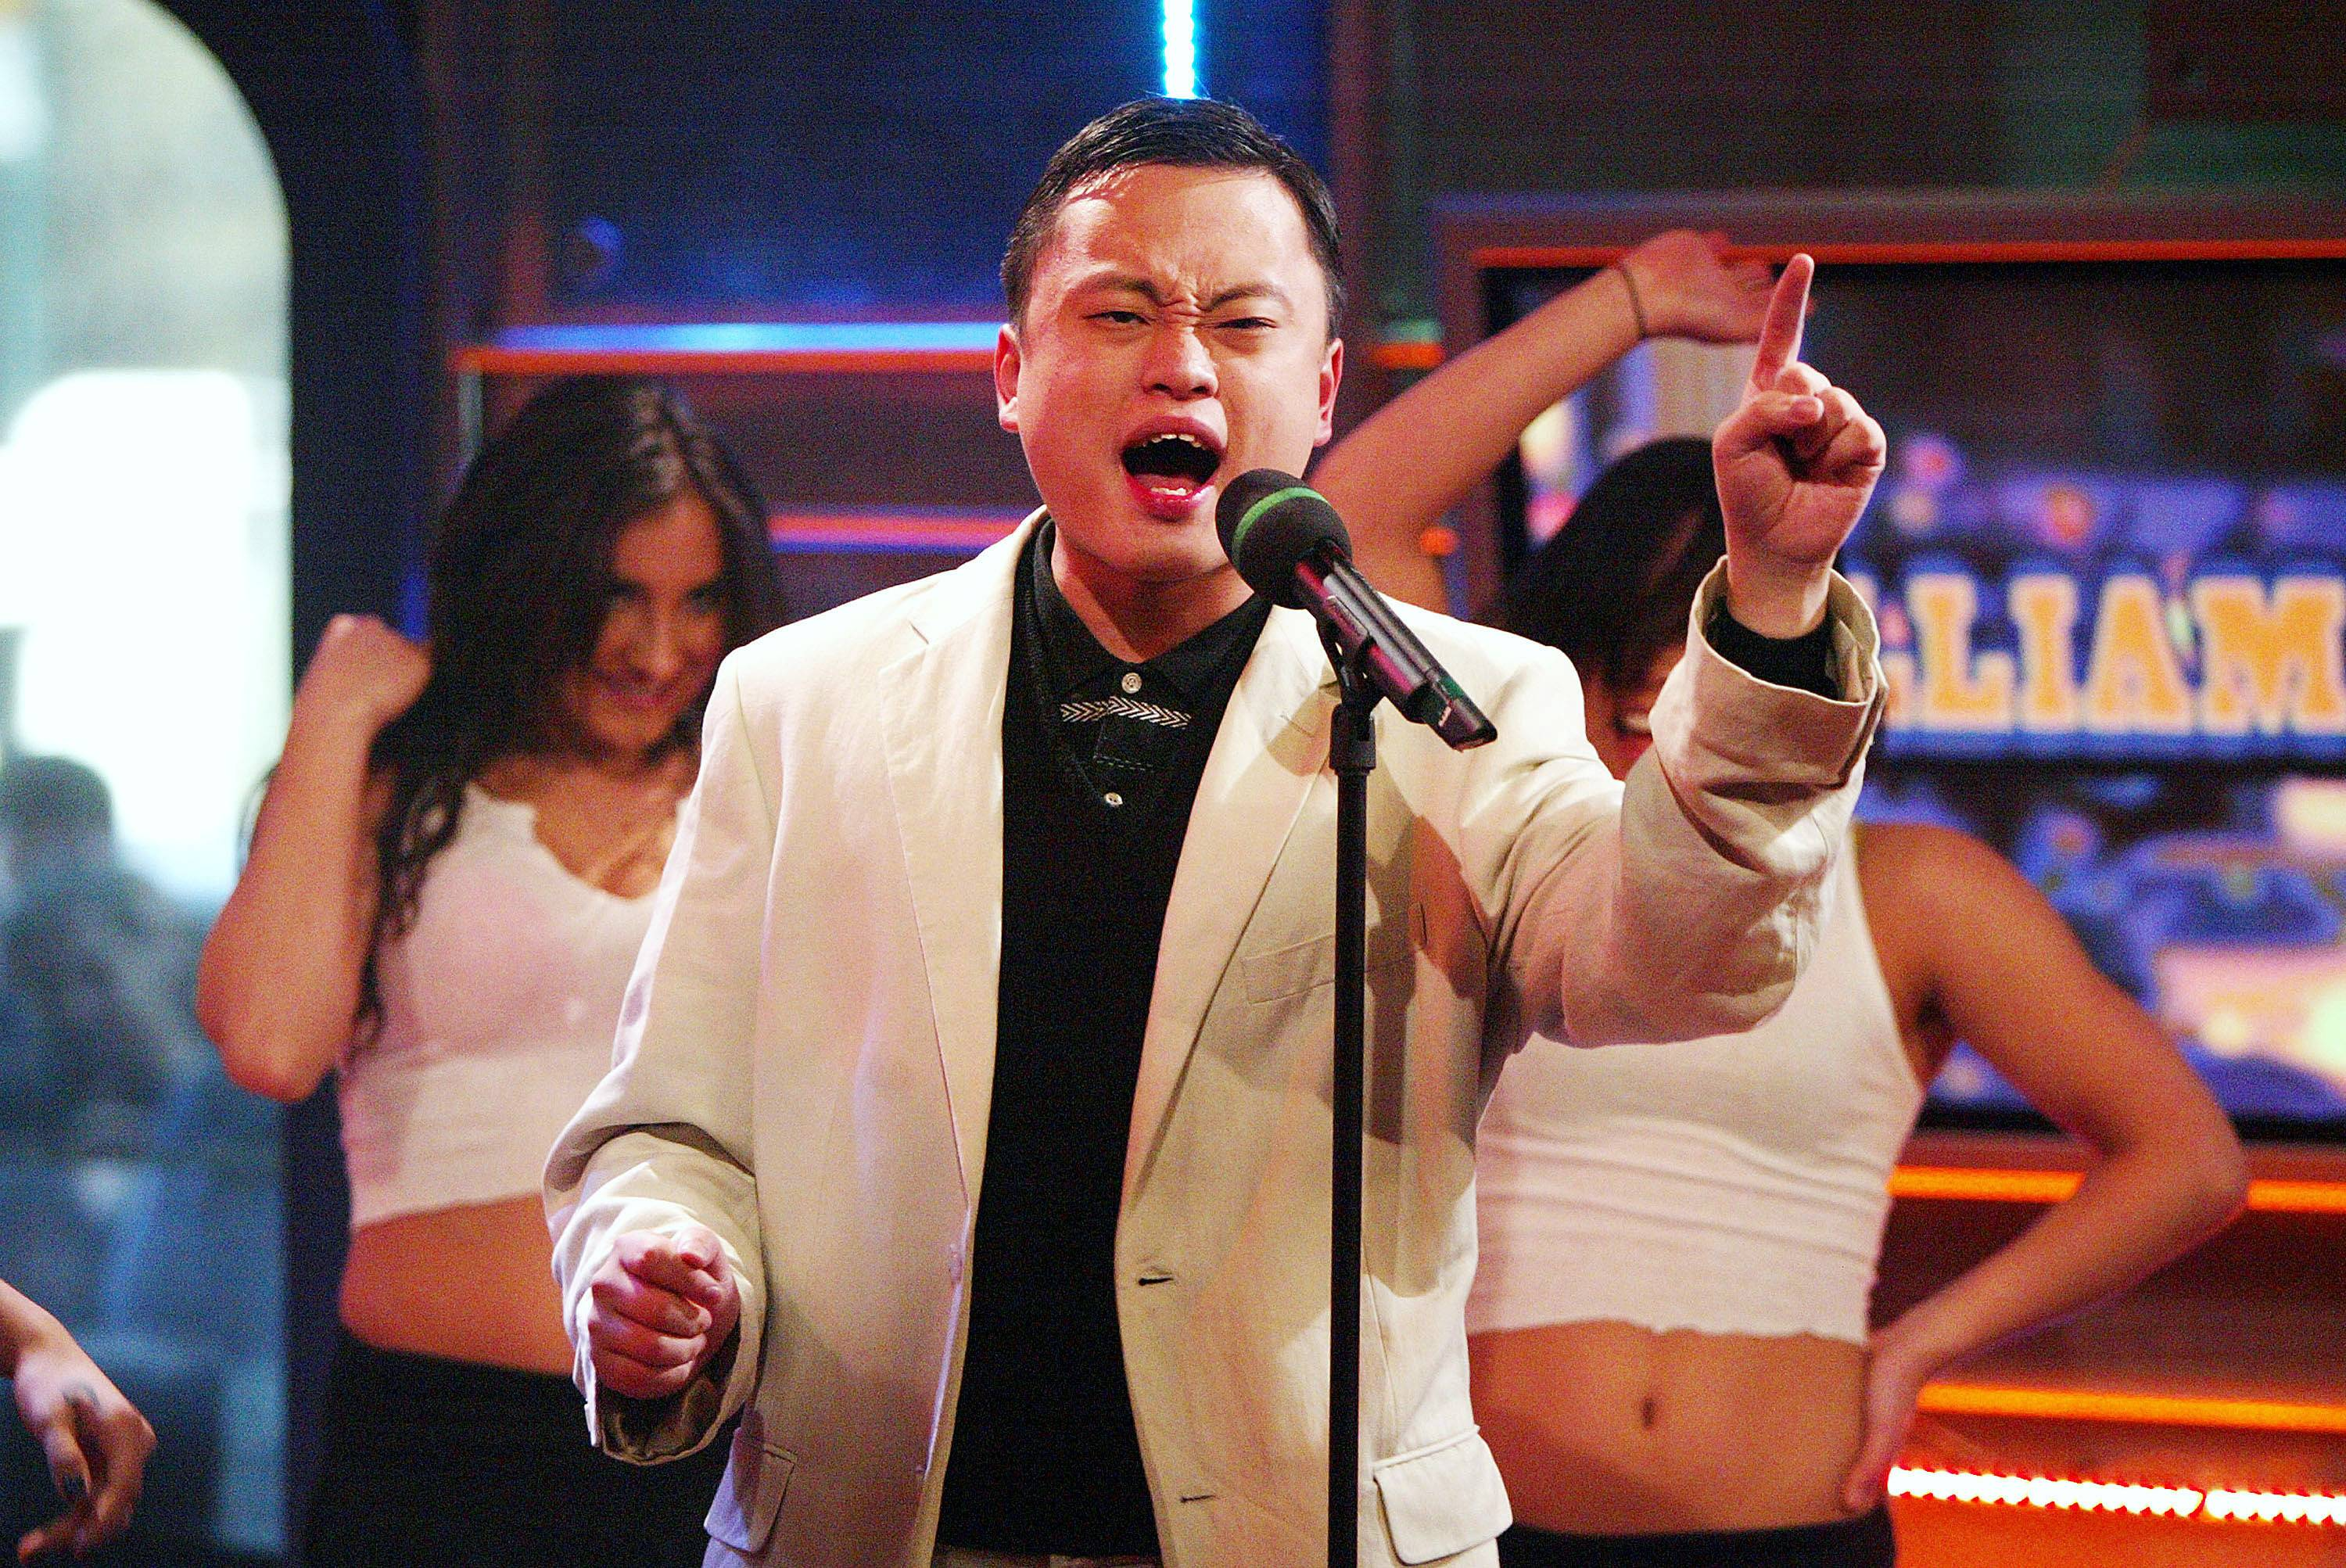 William HungSeason 3Winner: Fantasia - Sure, eventual Season 3 winner Fantasia won crowds over with her powerful pipes, but California native William Hung captured the hearts of American Idol fans with his earnest but off-key rendition of Ricky Martin?s ?She Bangs.? Hung quickly became a fan favorite who, despite losing, went on to sign a record deal with Koch Entertainment. The singer has put out three solo albums and appeared in television ads and foreign sitcoms. He bangs!Photo: By Scott Gries/Getty Images